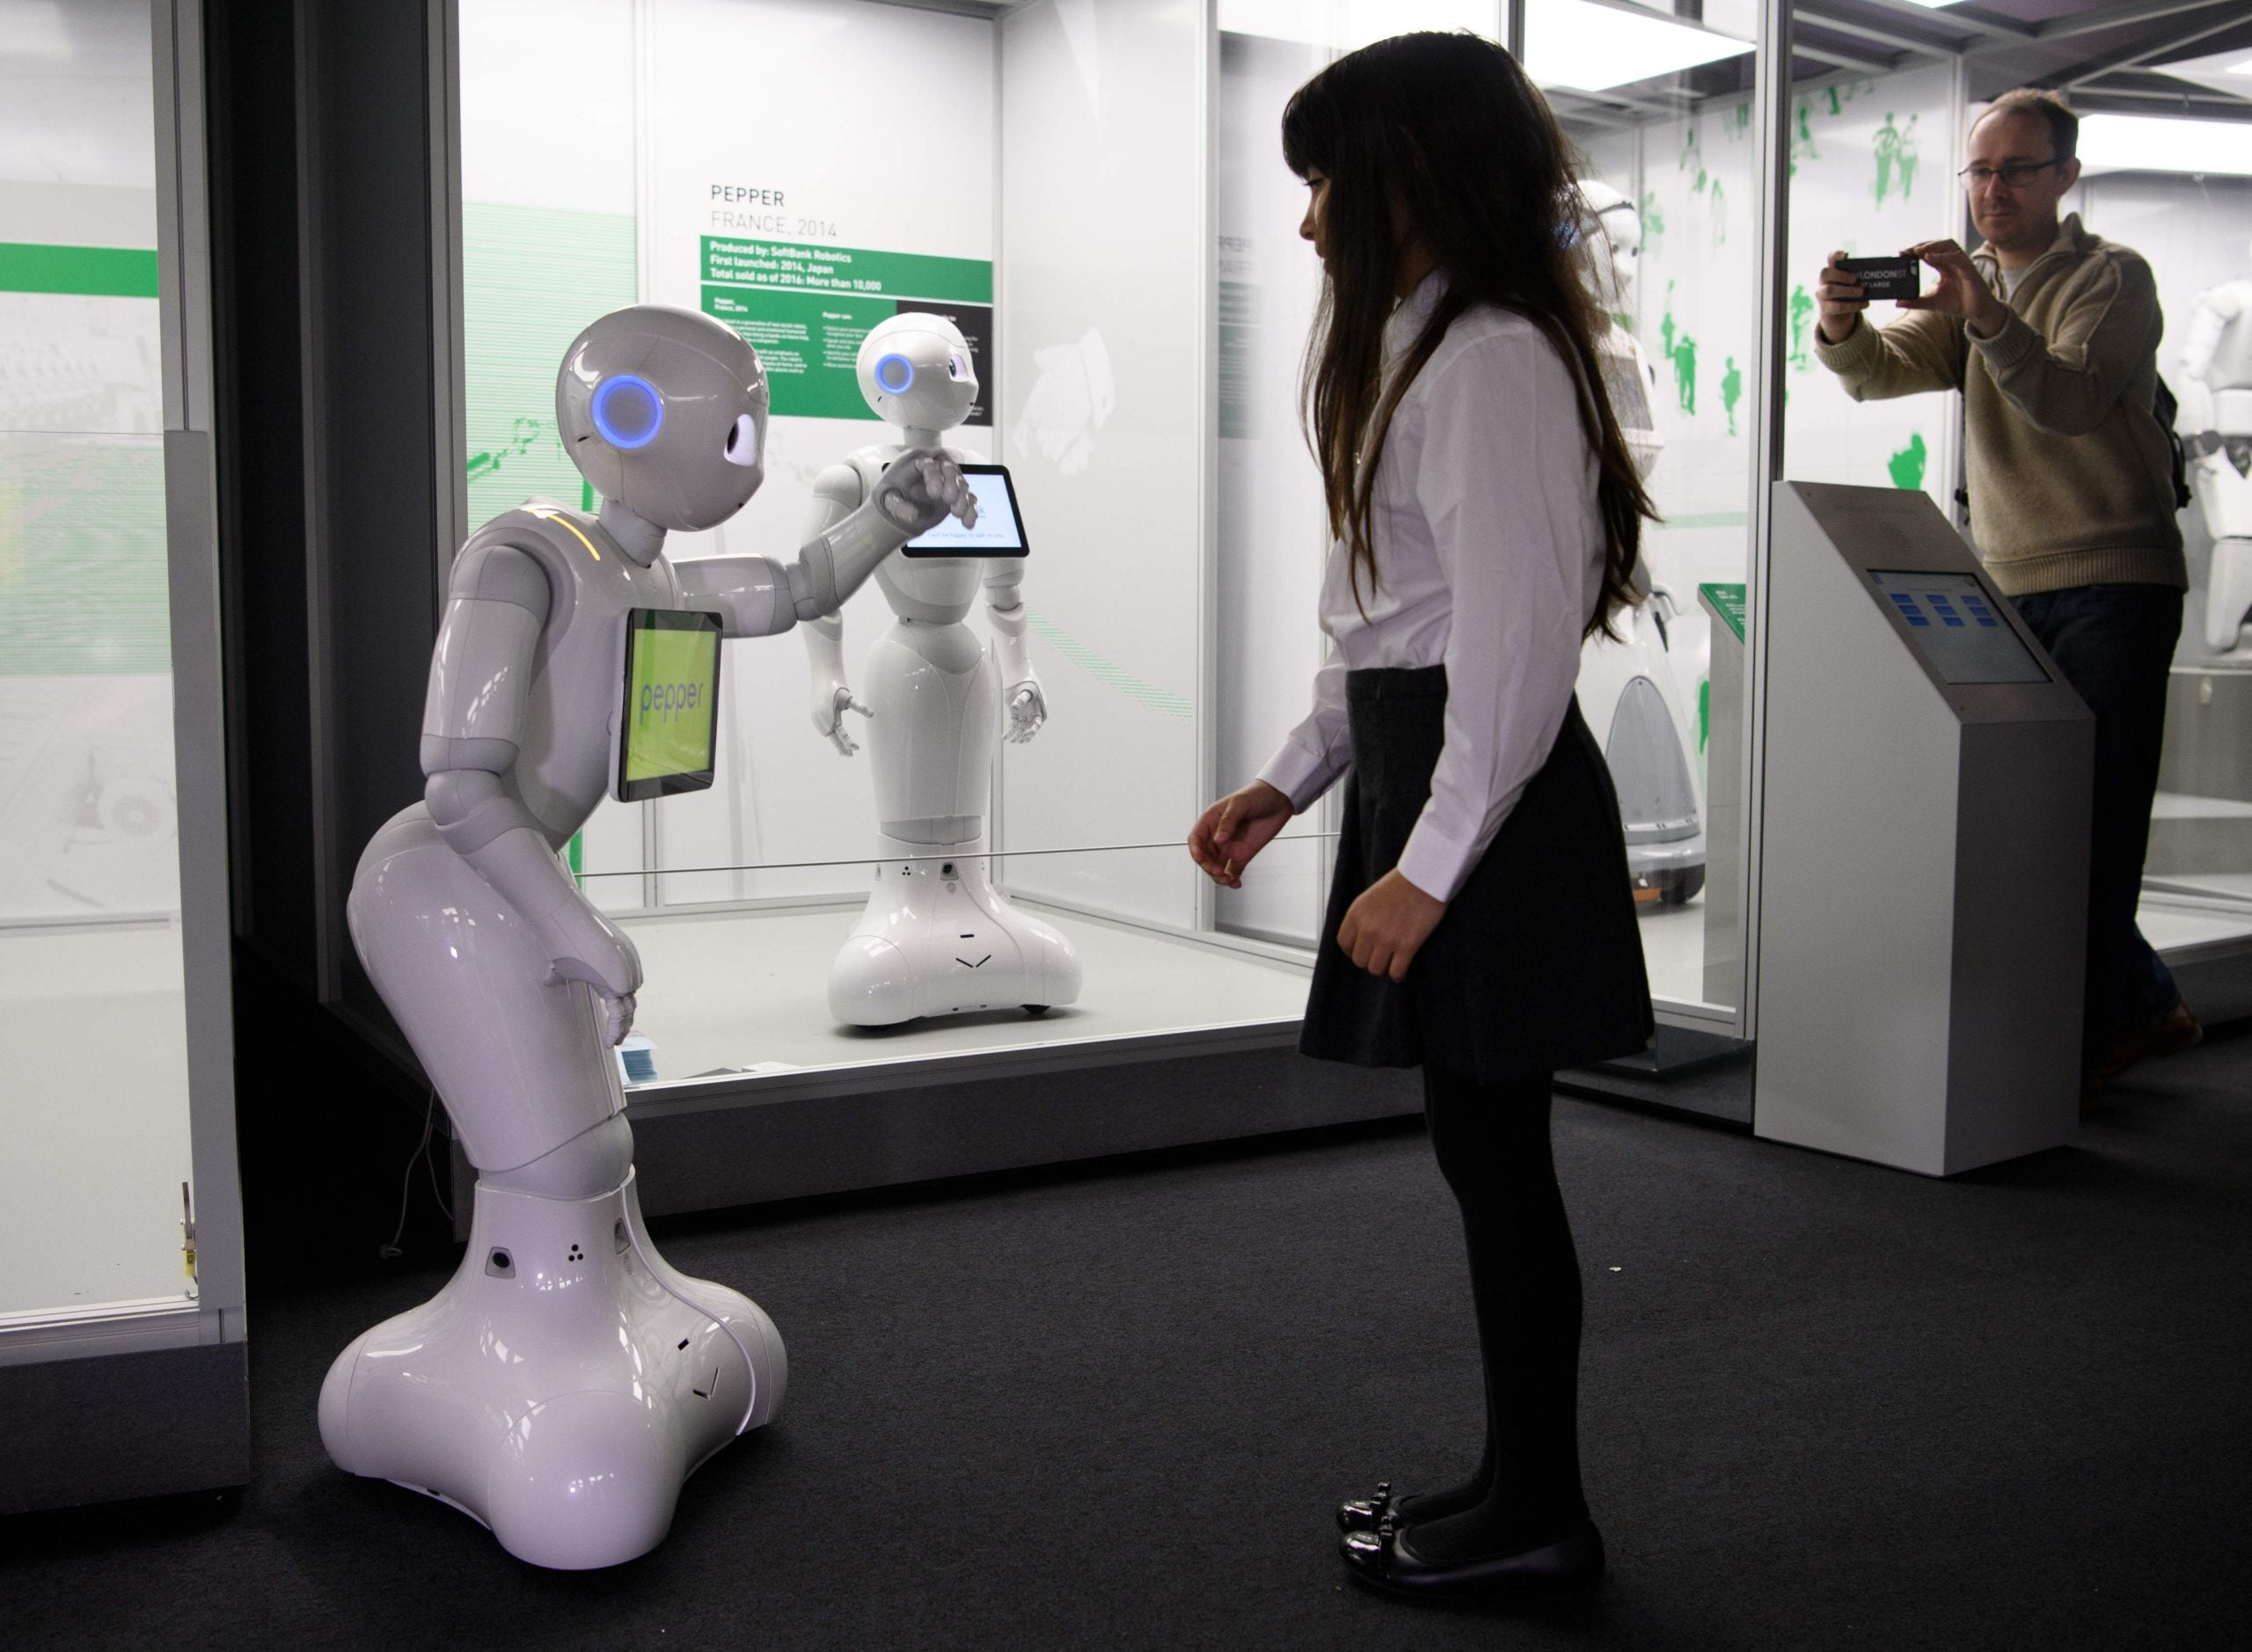 """""""Eton for all"""": will robot teachers mean everyone gets an elite education?"""